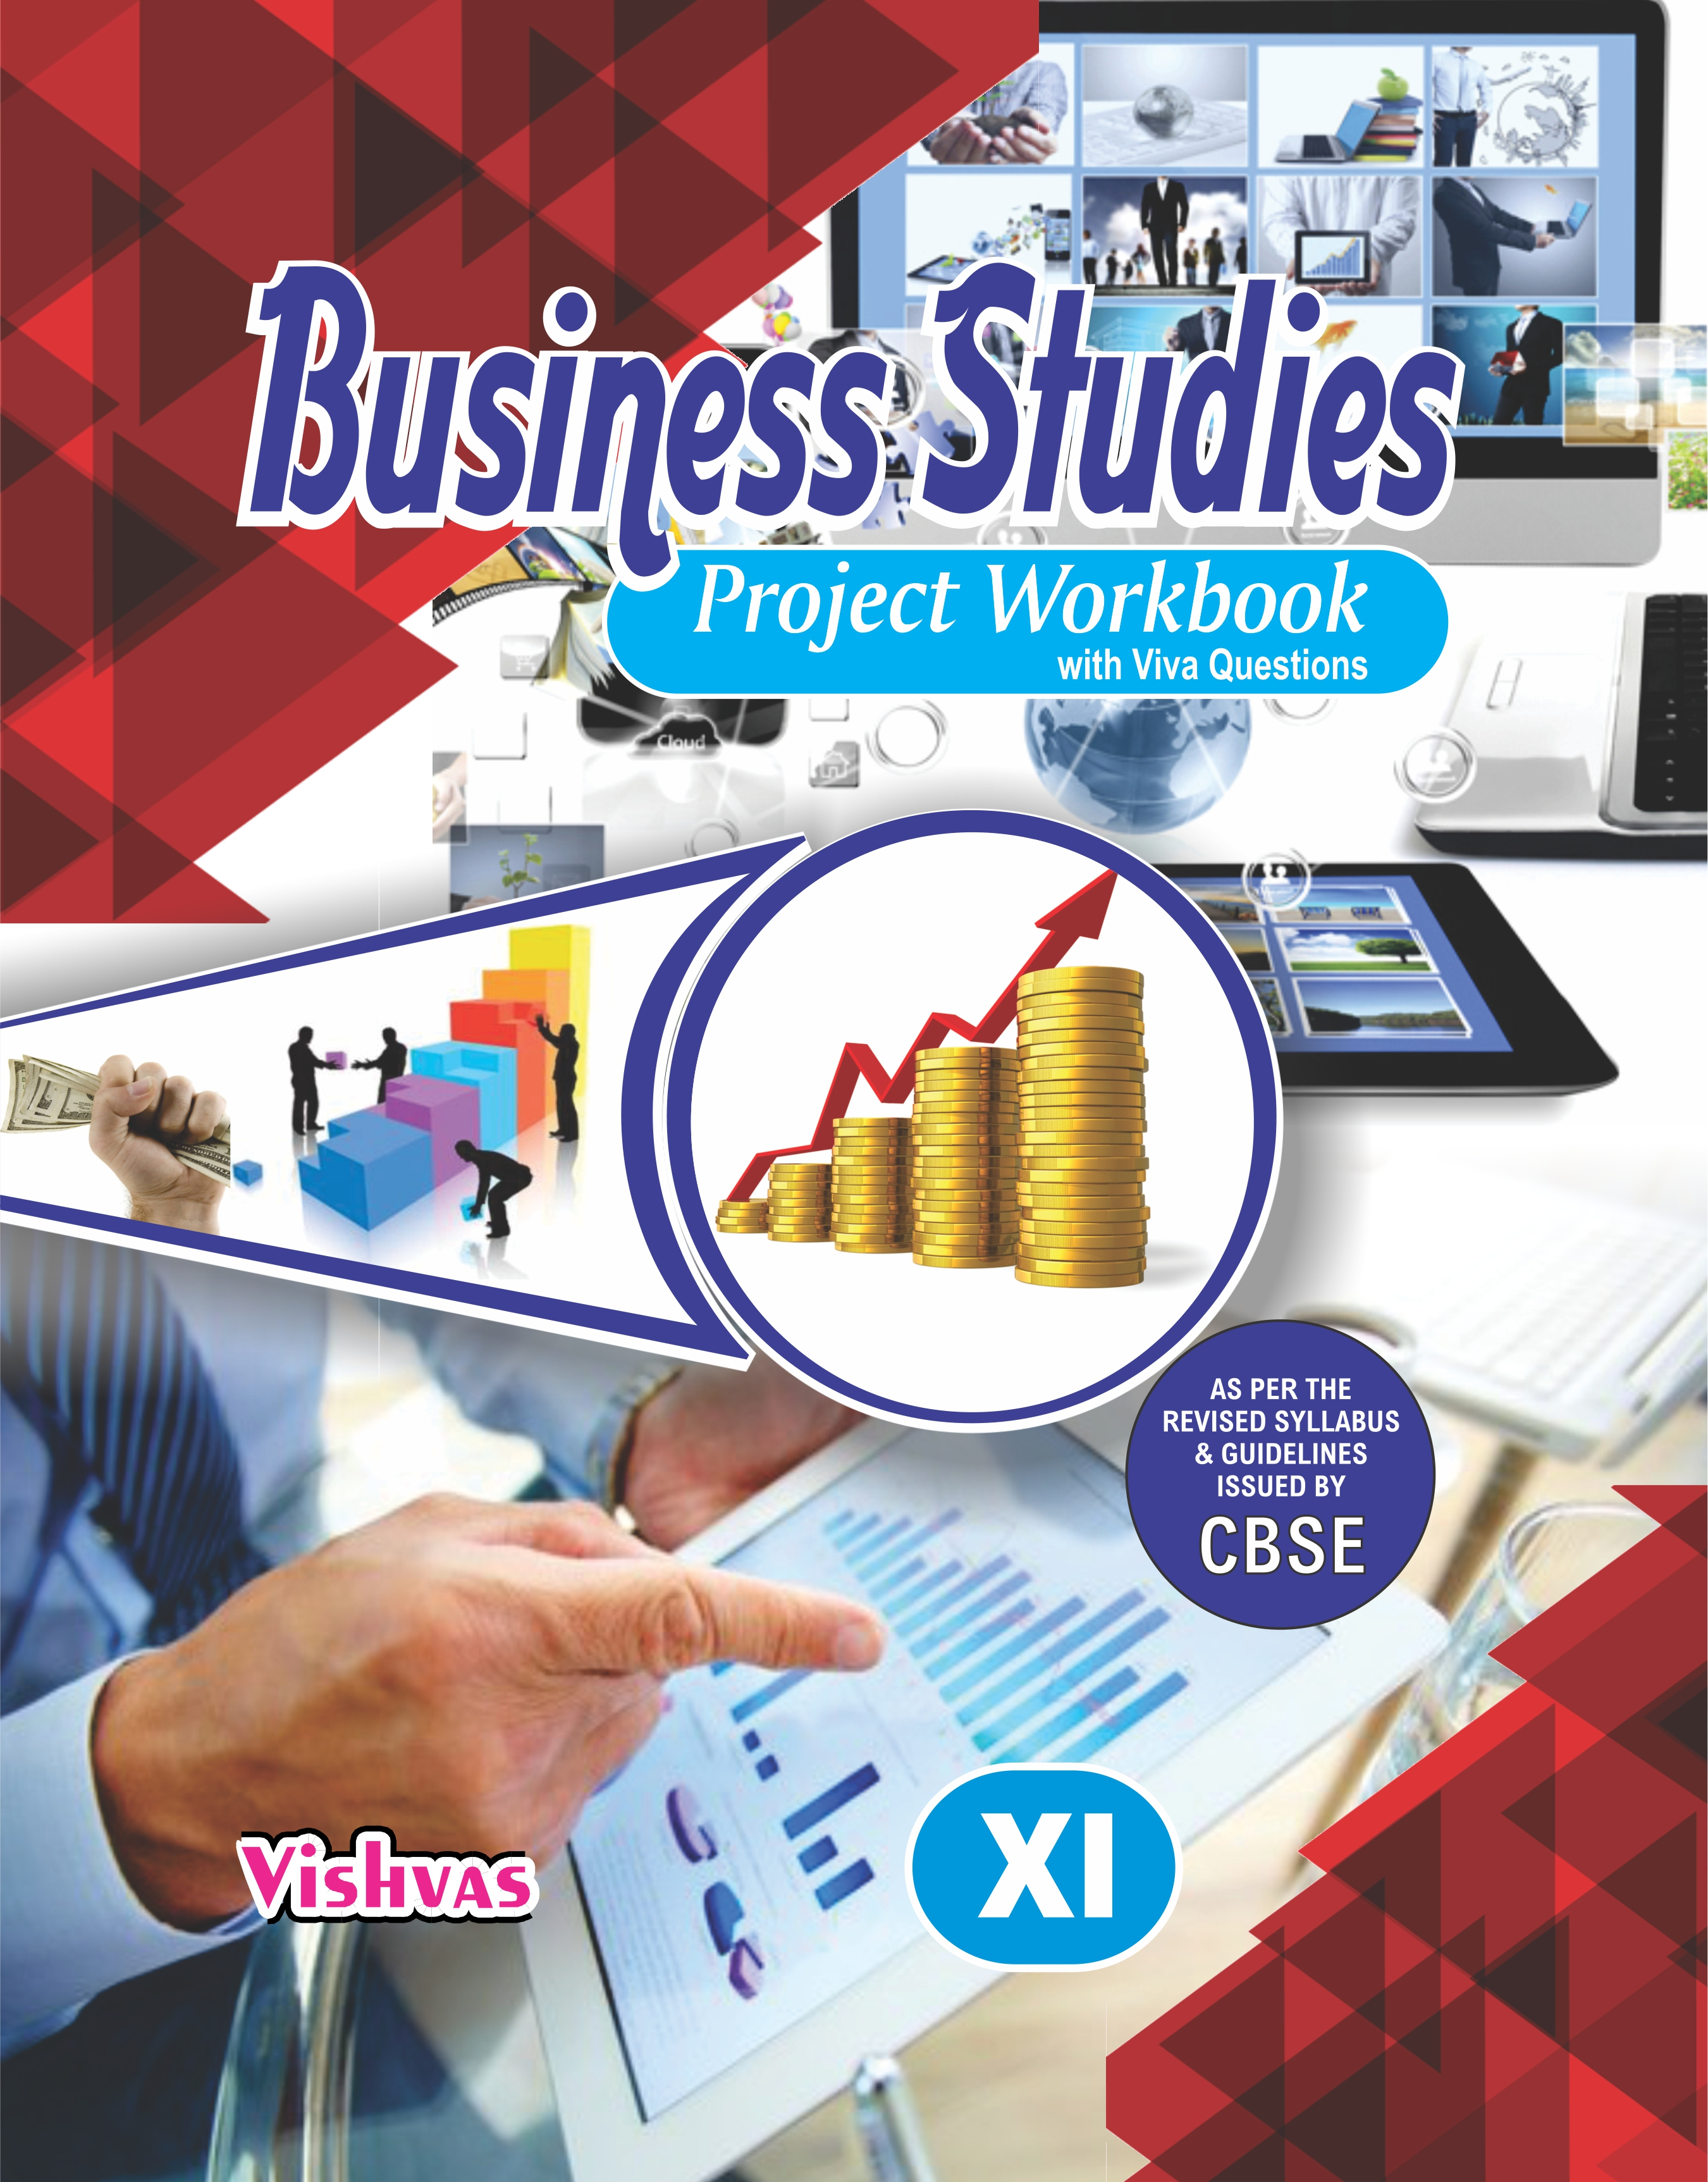 Business study project workbook class 11th vishvasbooks vishvas books business study project workbook class 11th malvernweather Choice Image